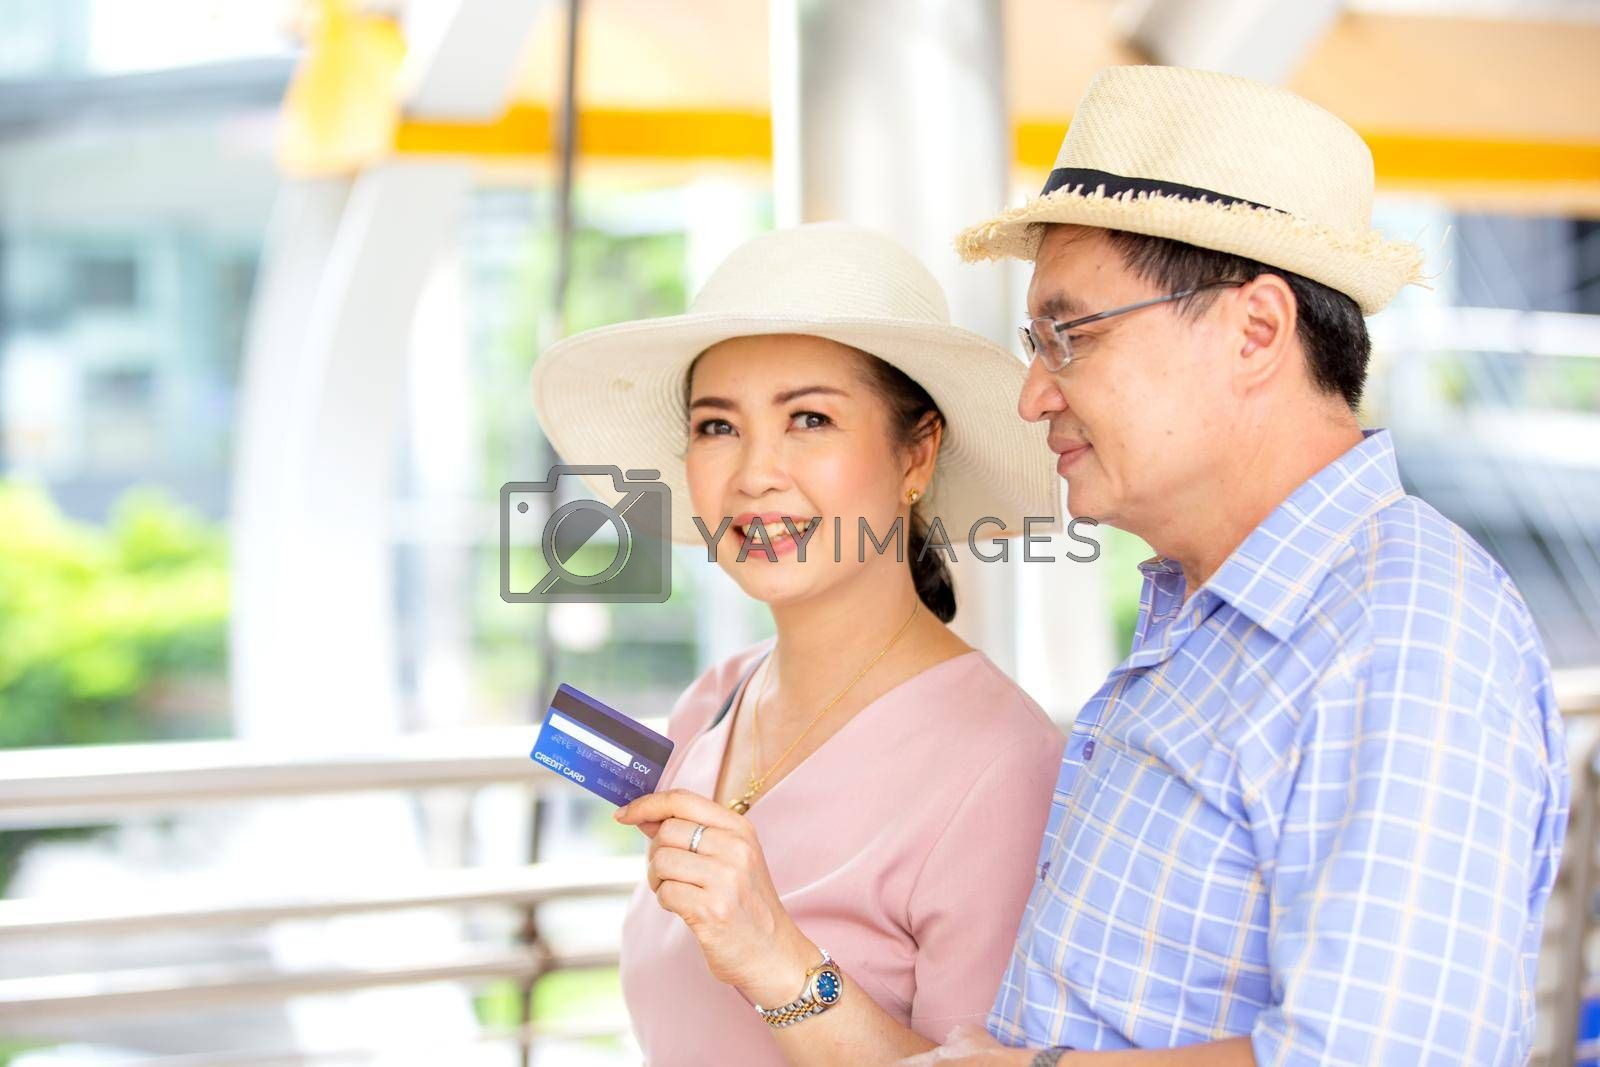 Asian couple enjoy travelling and walking on the street in city.